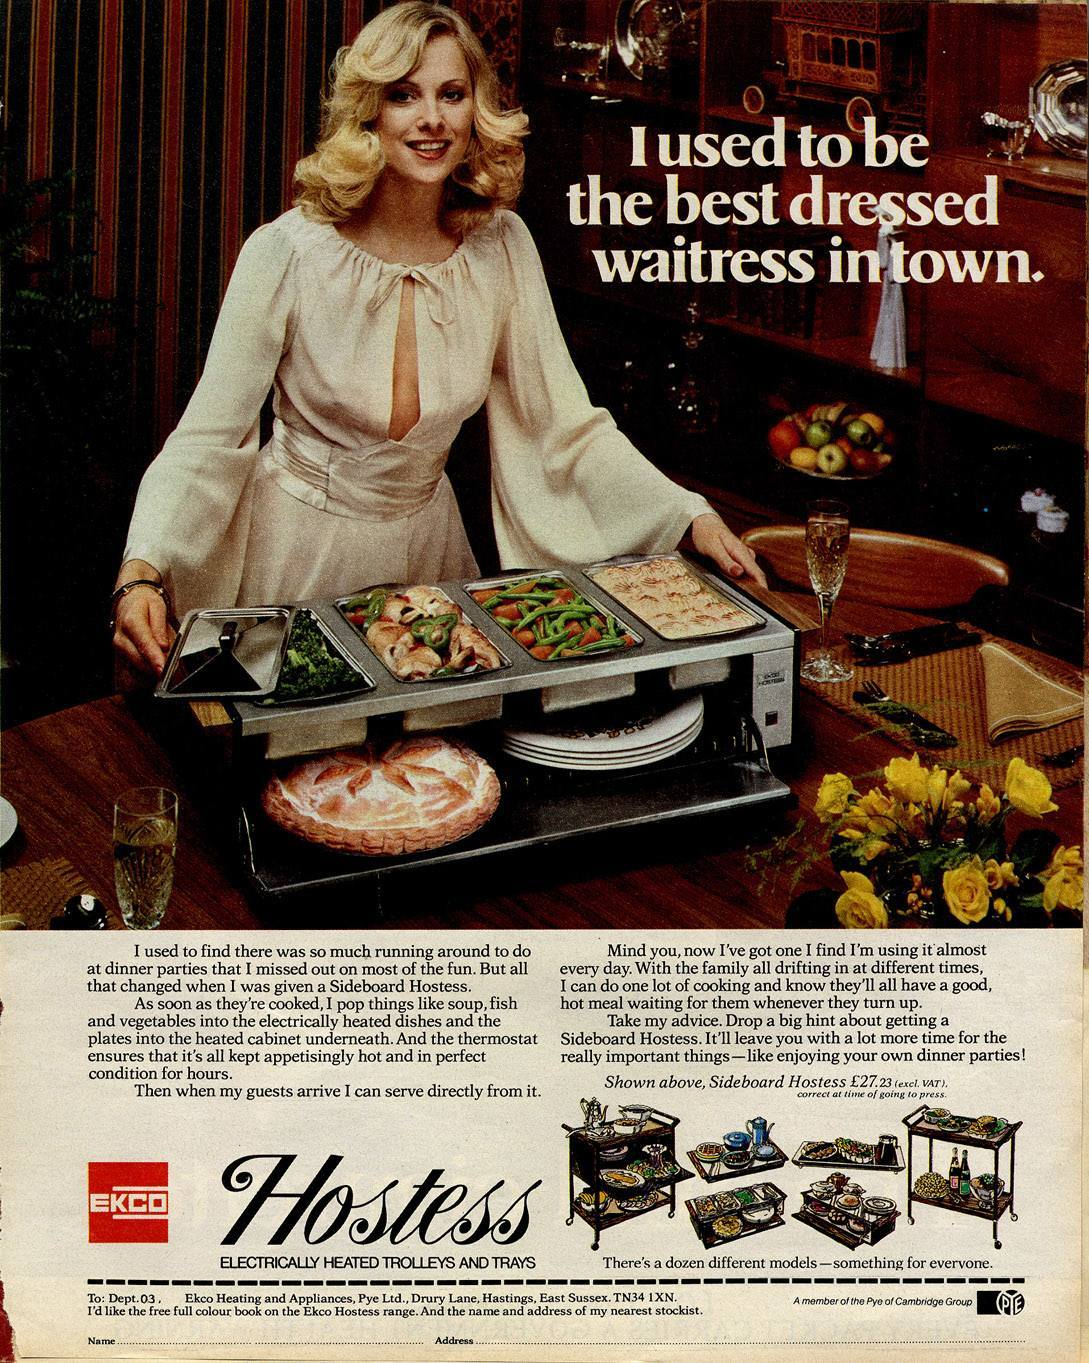 Hostess Trollies 1976